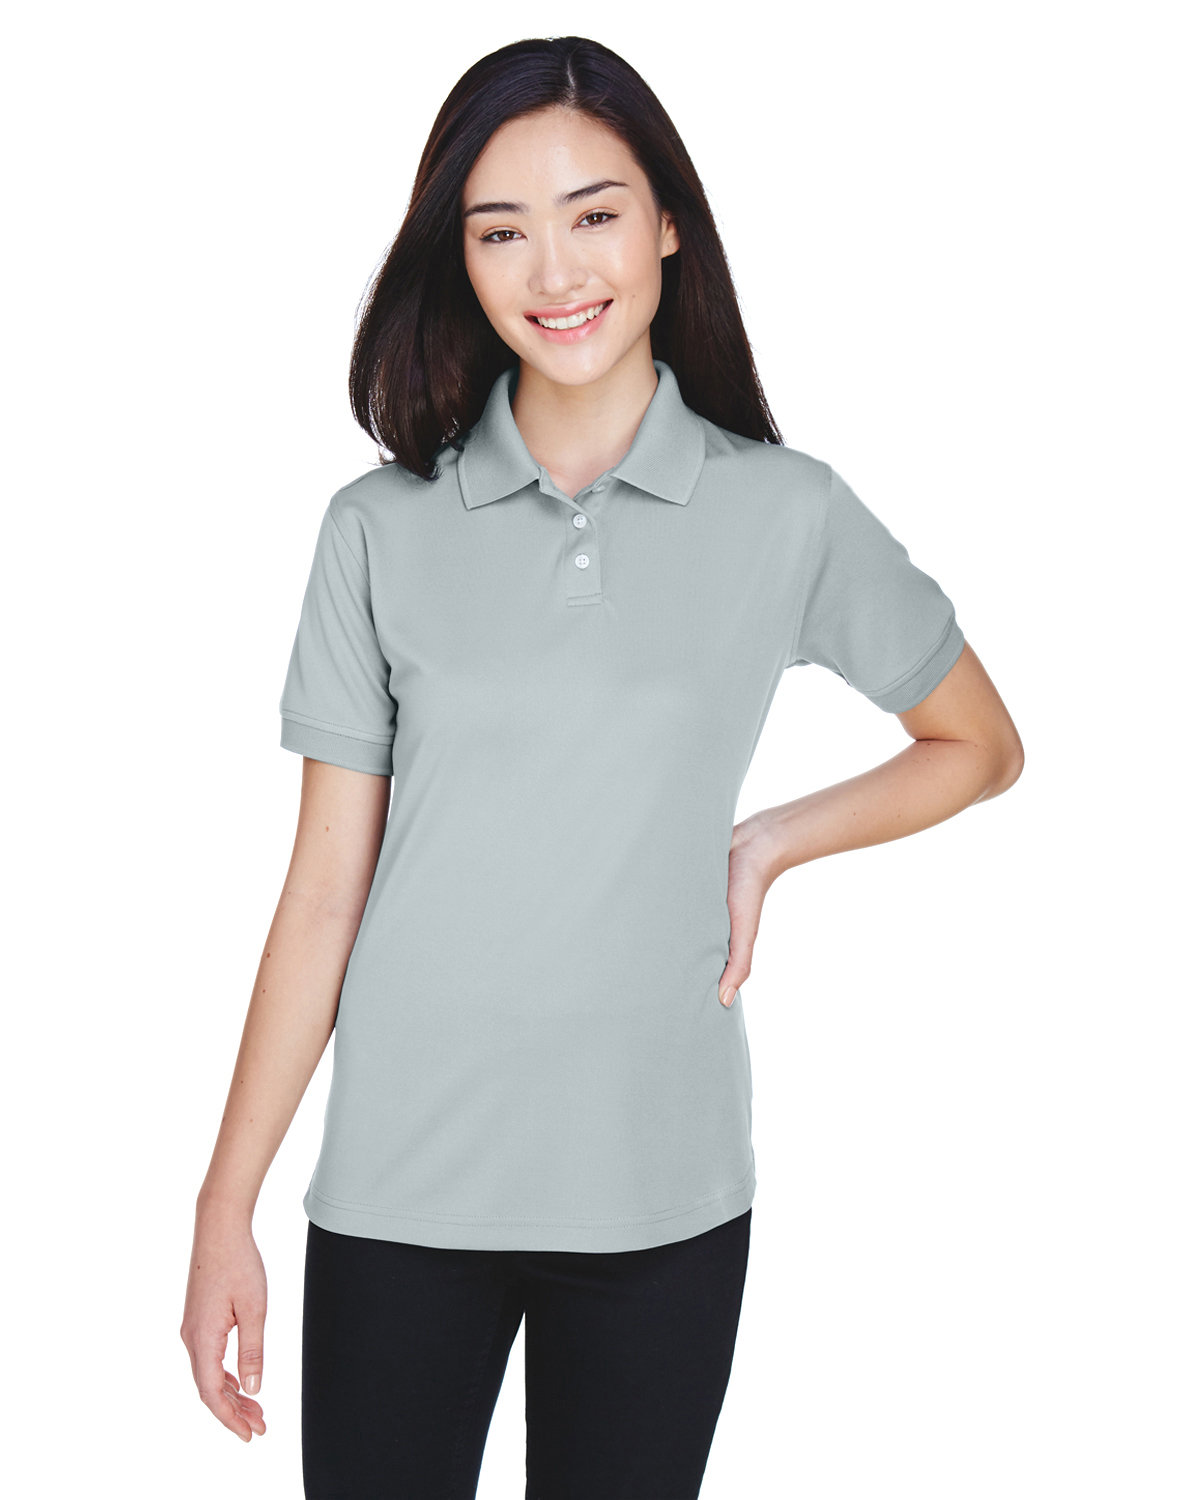 UltraClub Ladies' Platinum Performance Piqué Polo with TempControl Technology GREY